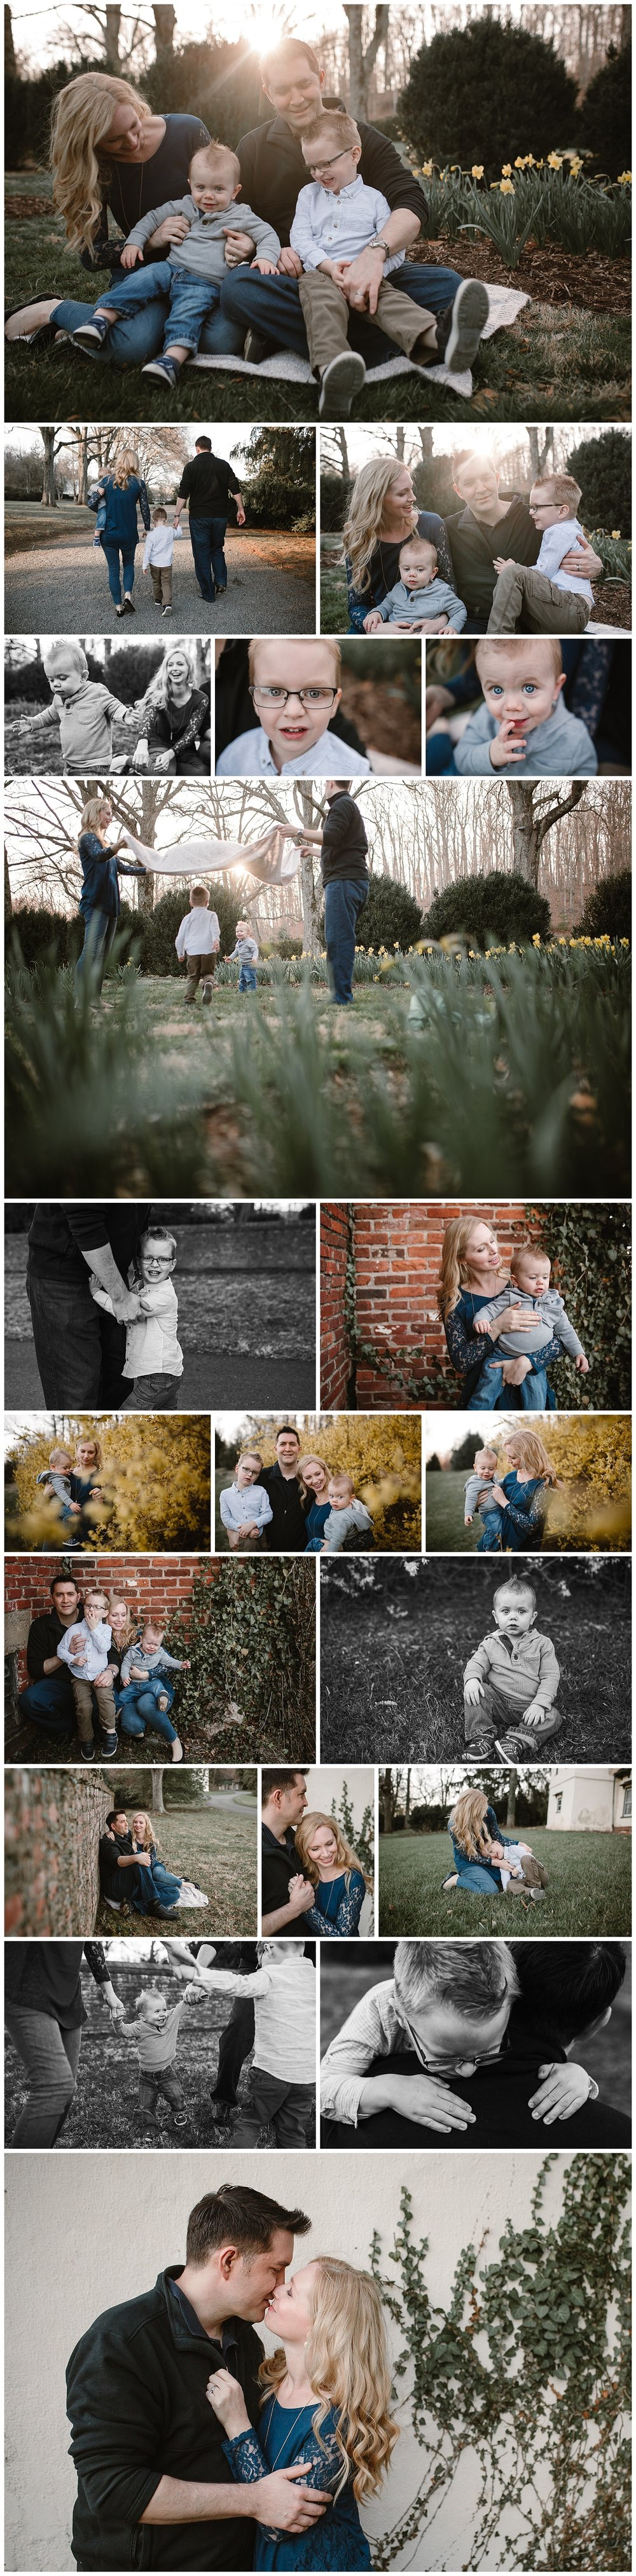 Morven Park Leesburg Virginia family photography brothers